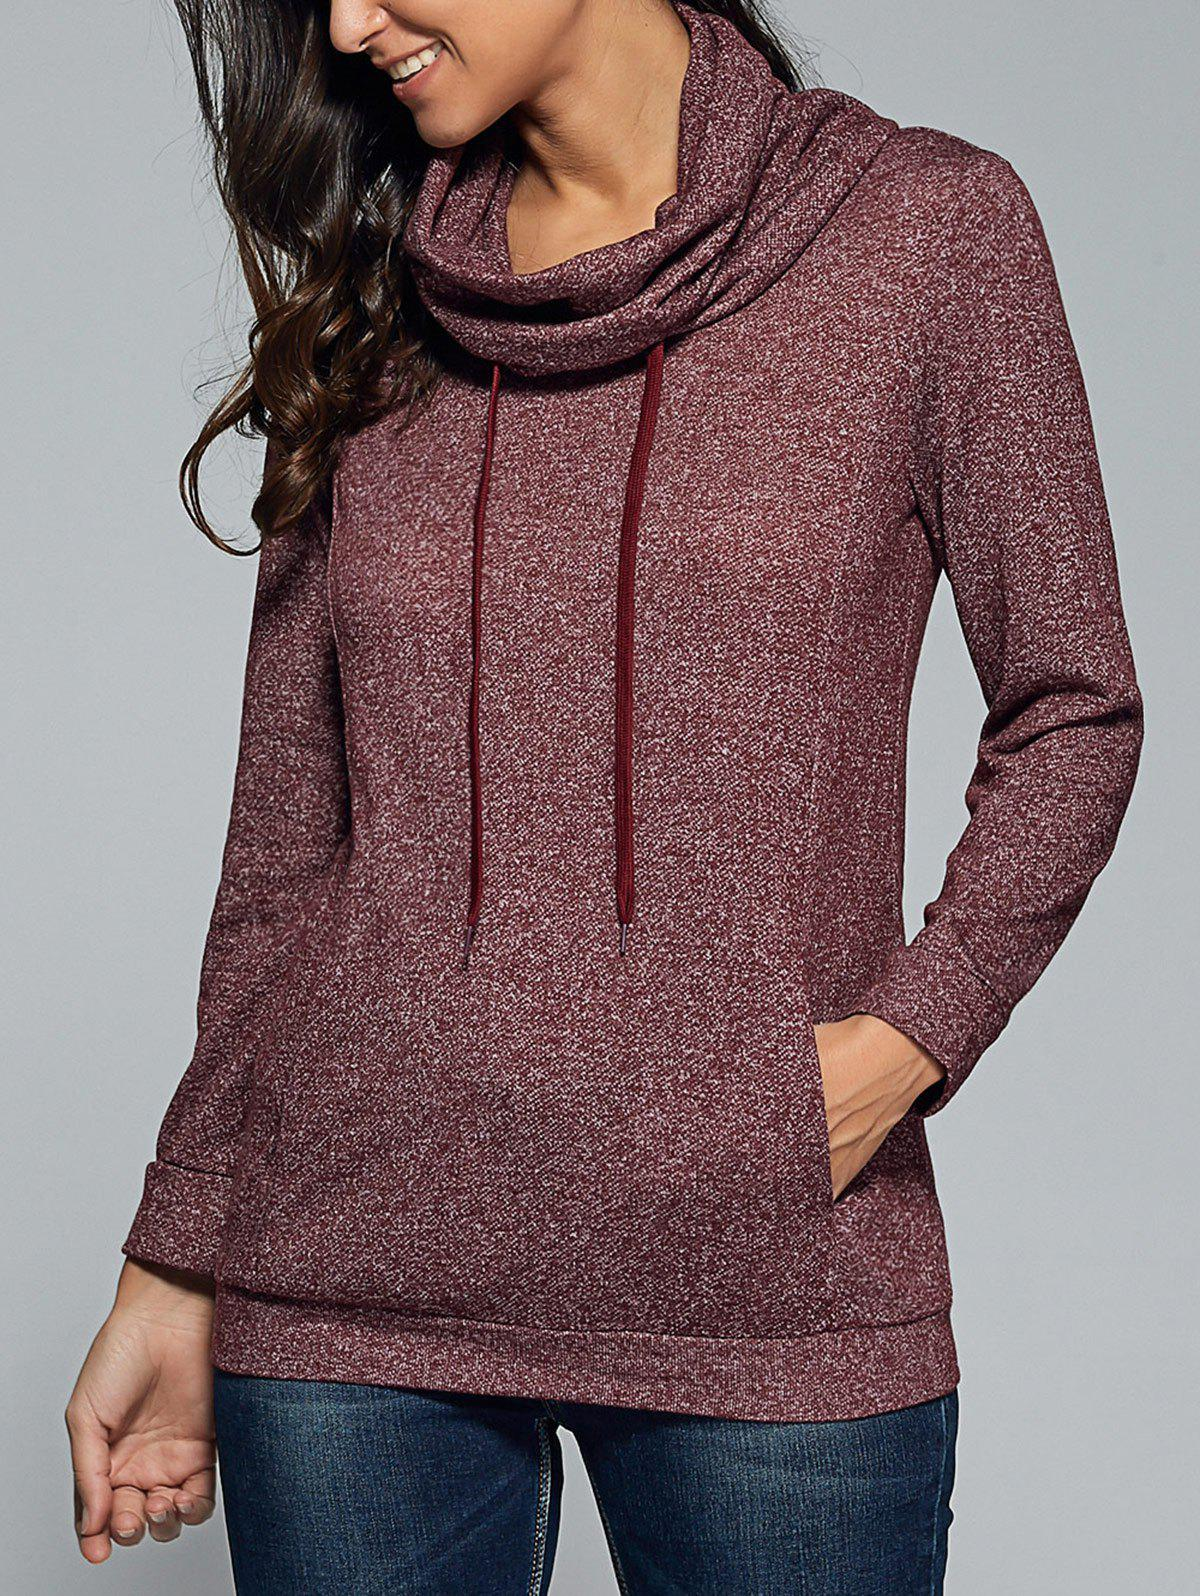 Hot Cowl Neck Heather Drawstring Sweatshirt